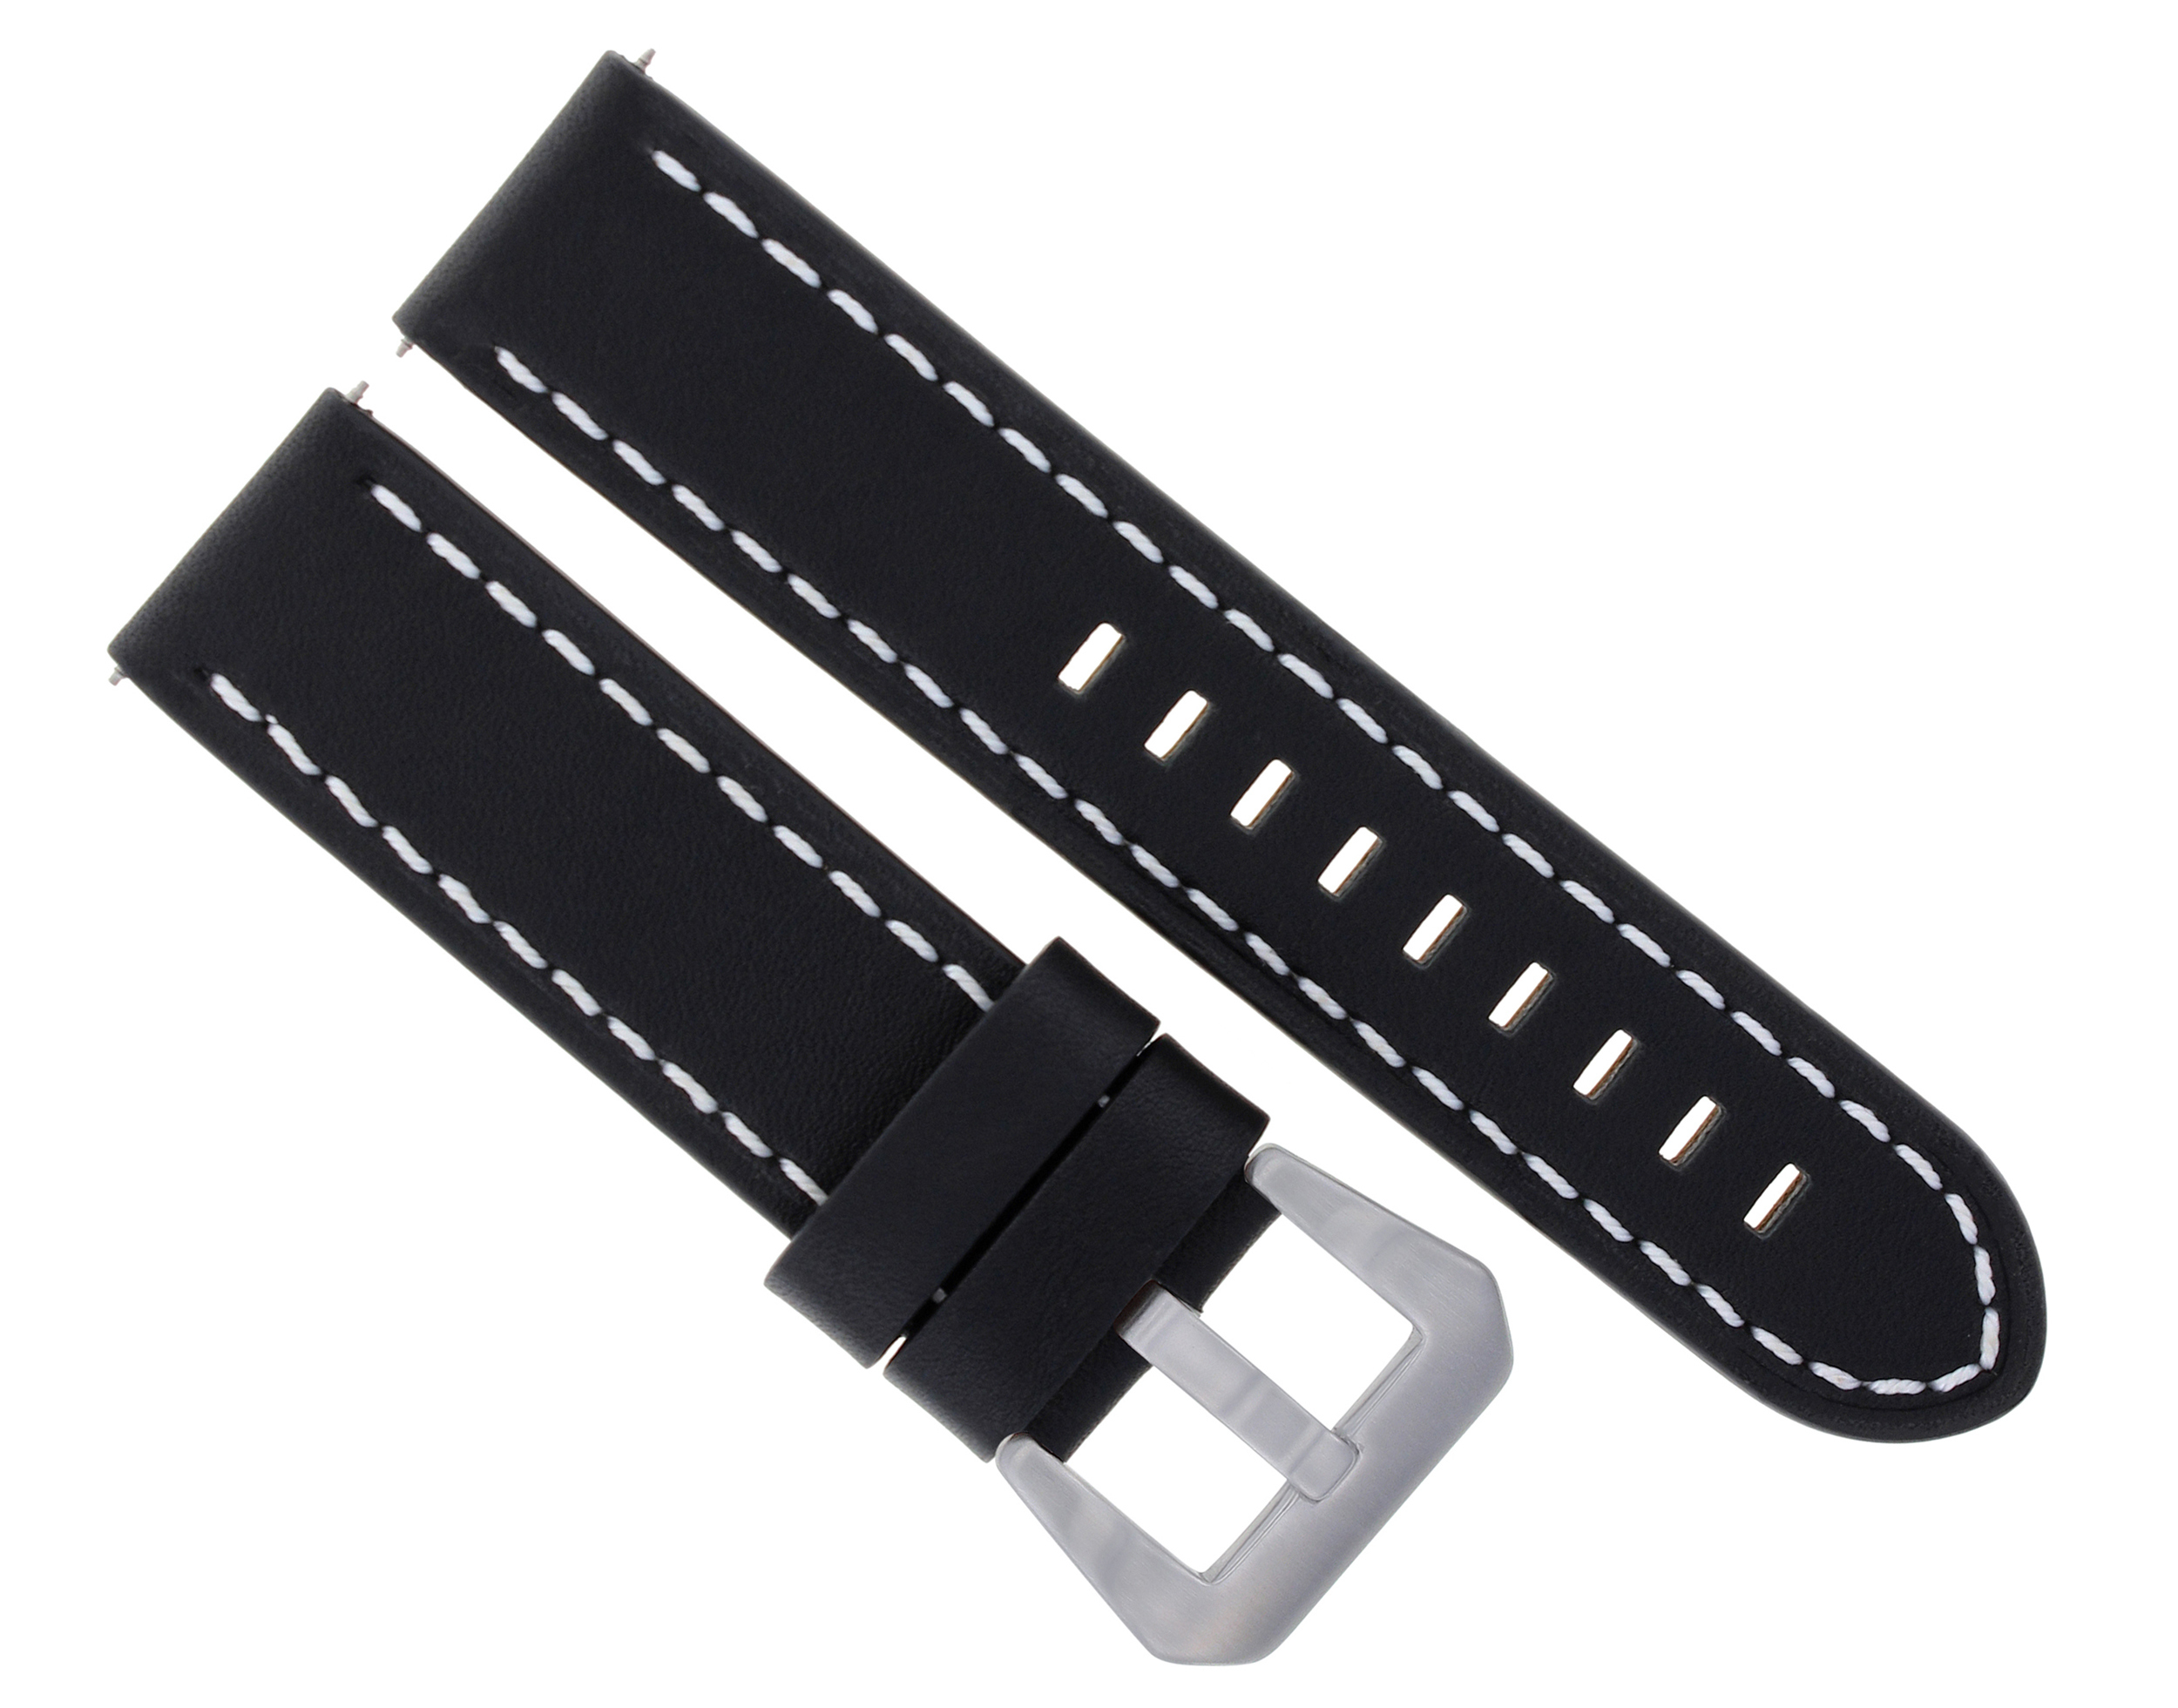 6b67e9a2351 20MM BUFFALO LEATHER WATCH STRAP BAND FOR BREITLING PILOT BLACK WHITE STITCH   10